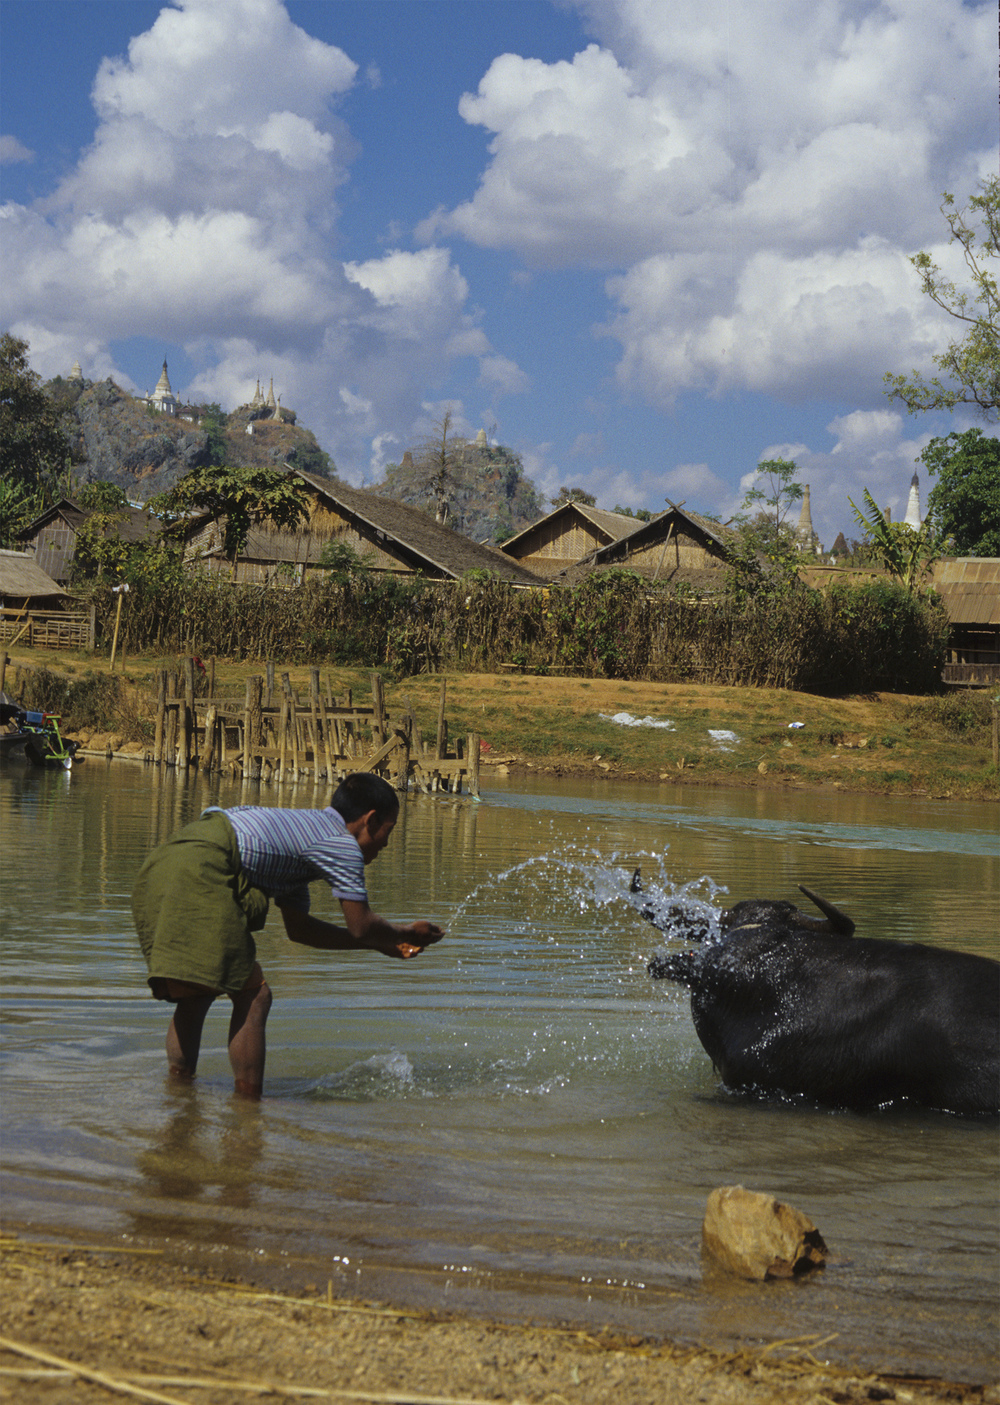 Washing buffalo